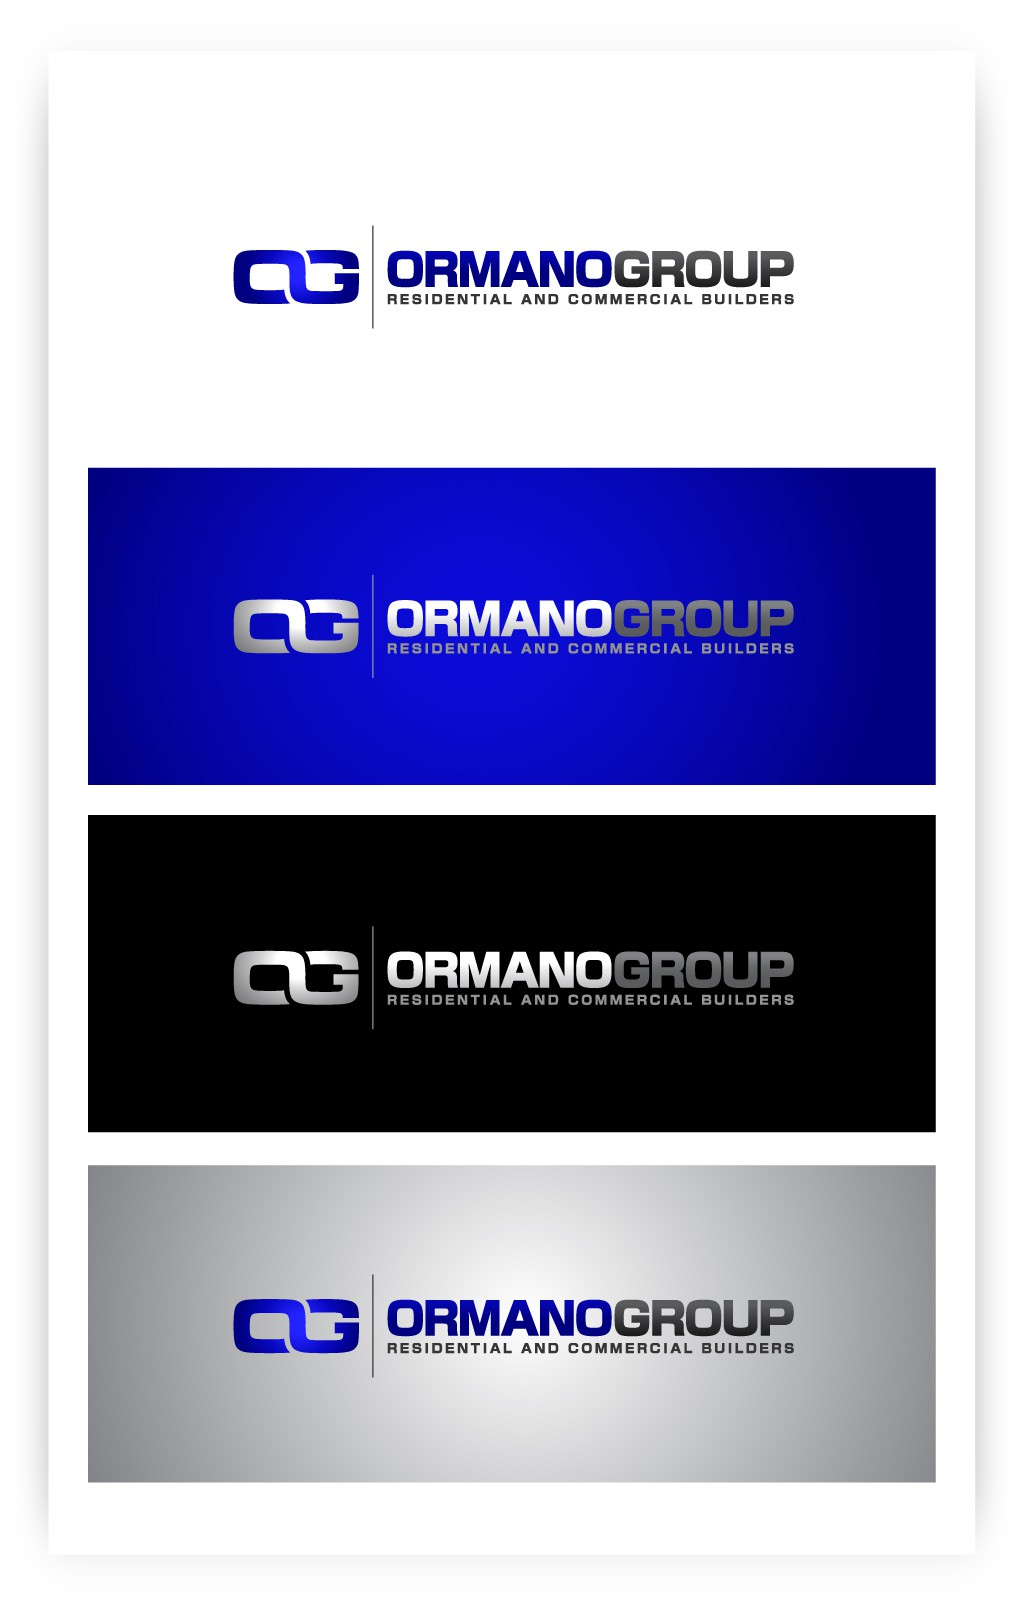 Help Ormano Group  with a new logo